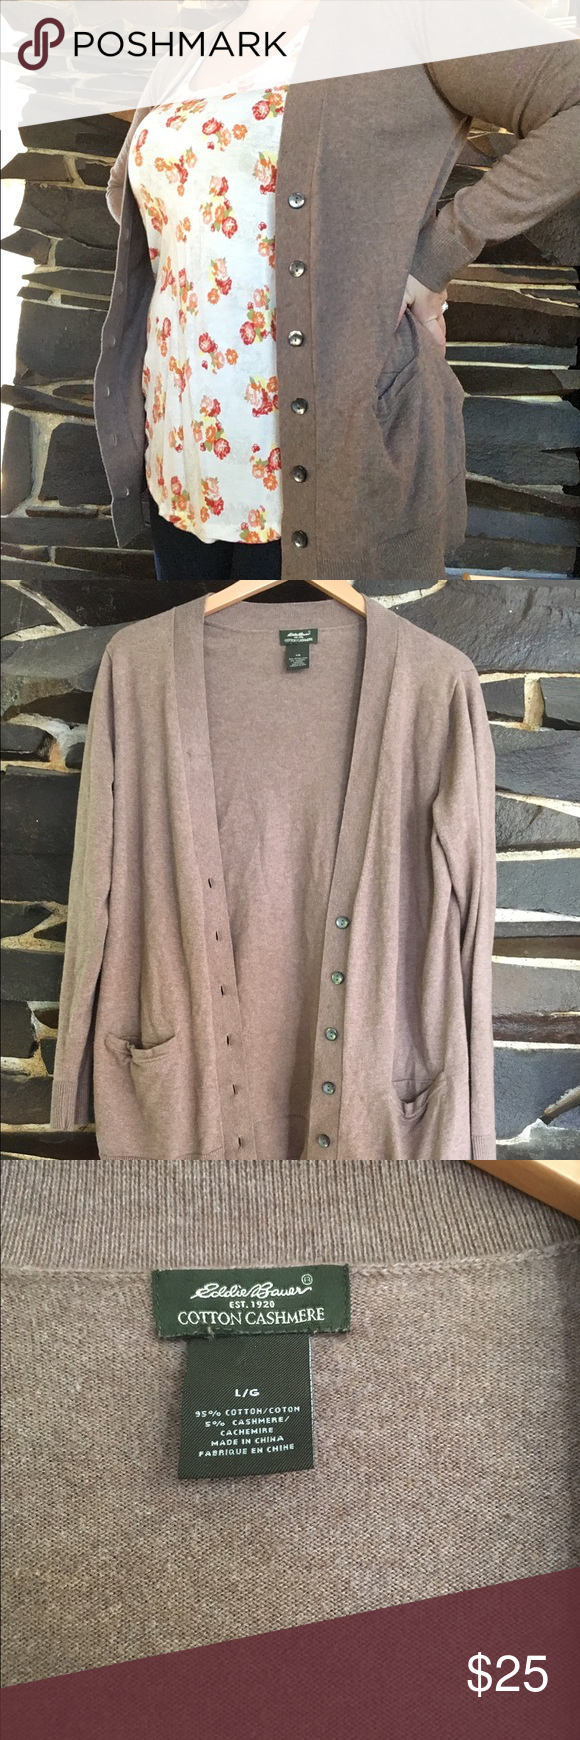 Eddie Bauer cotton cashmere cardigan Brown Eddie Bauer cotton ...